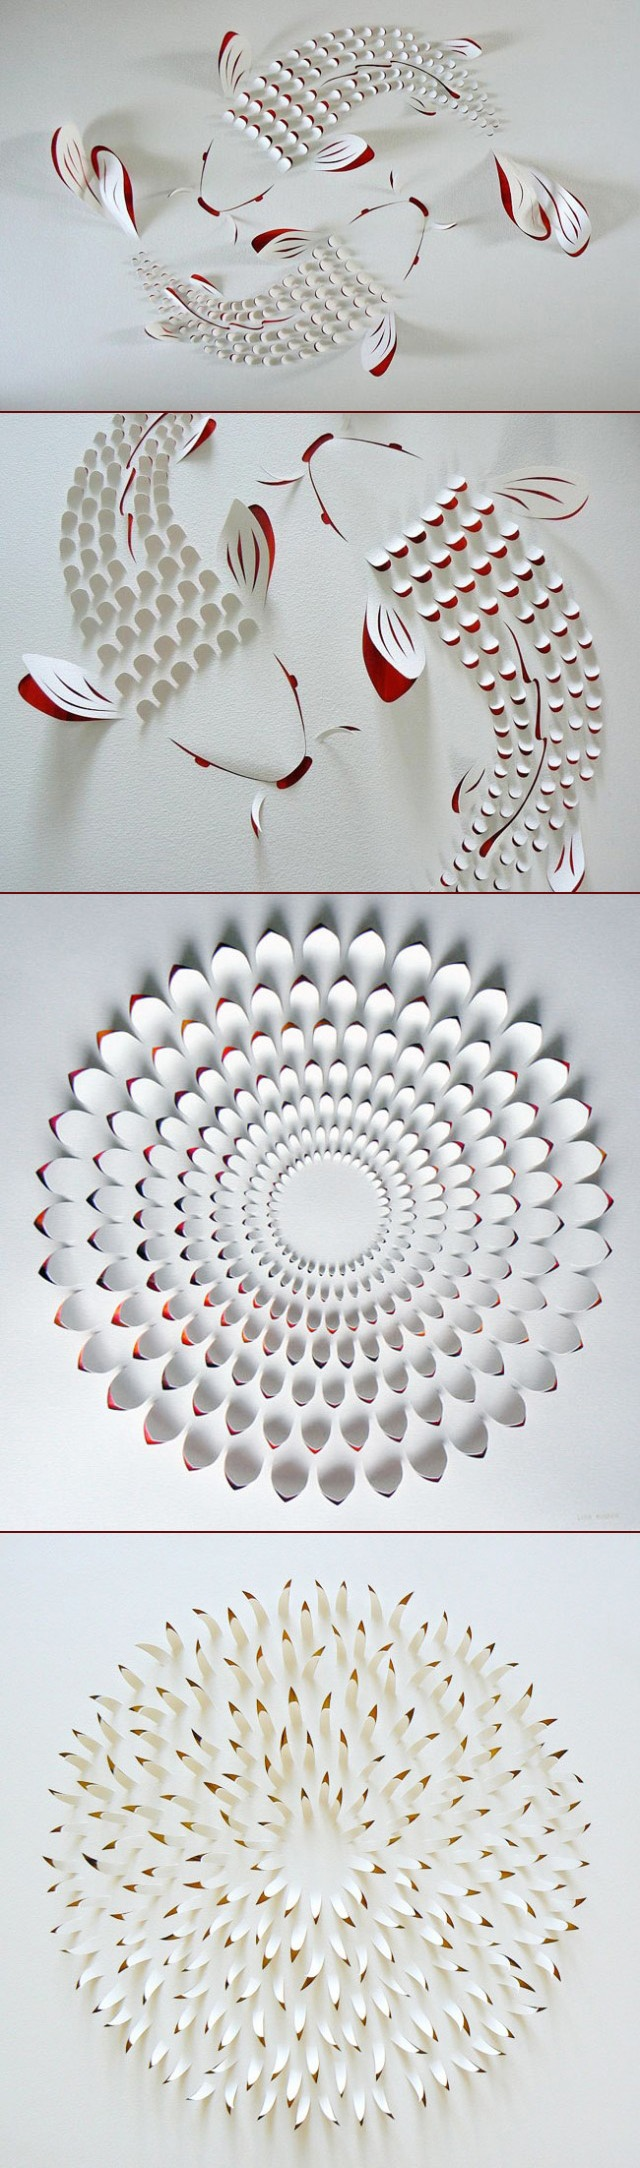 Hand Cut Paper Art - australiana Lisa Rodden,